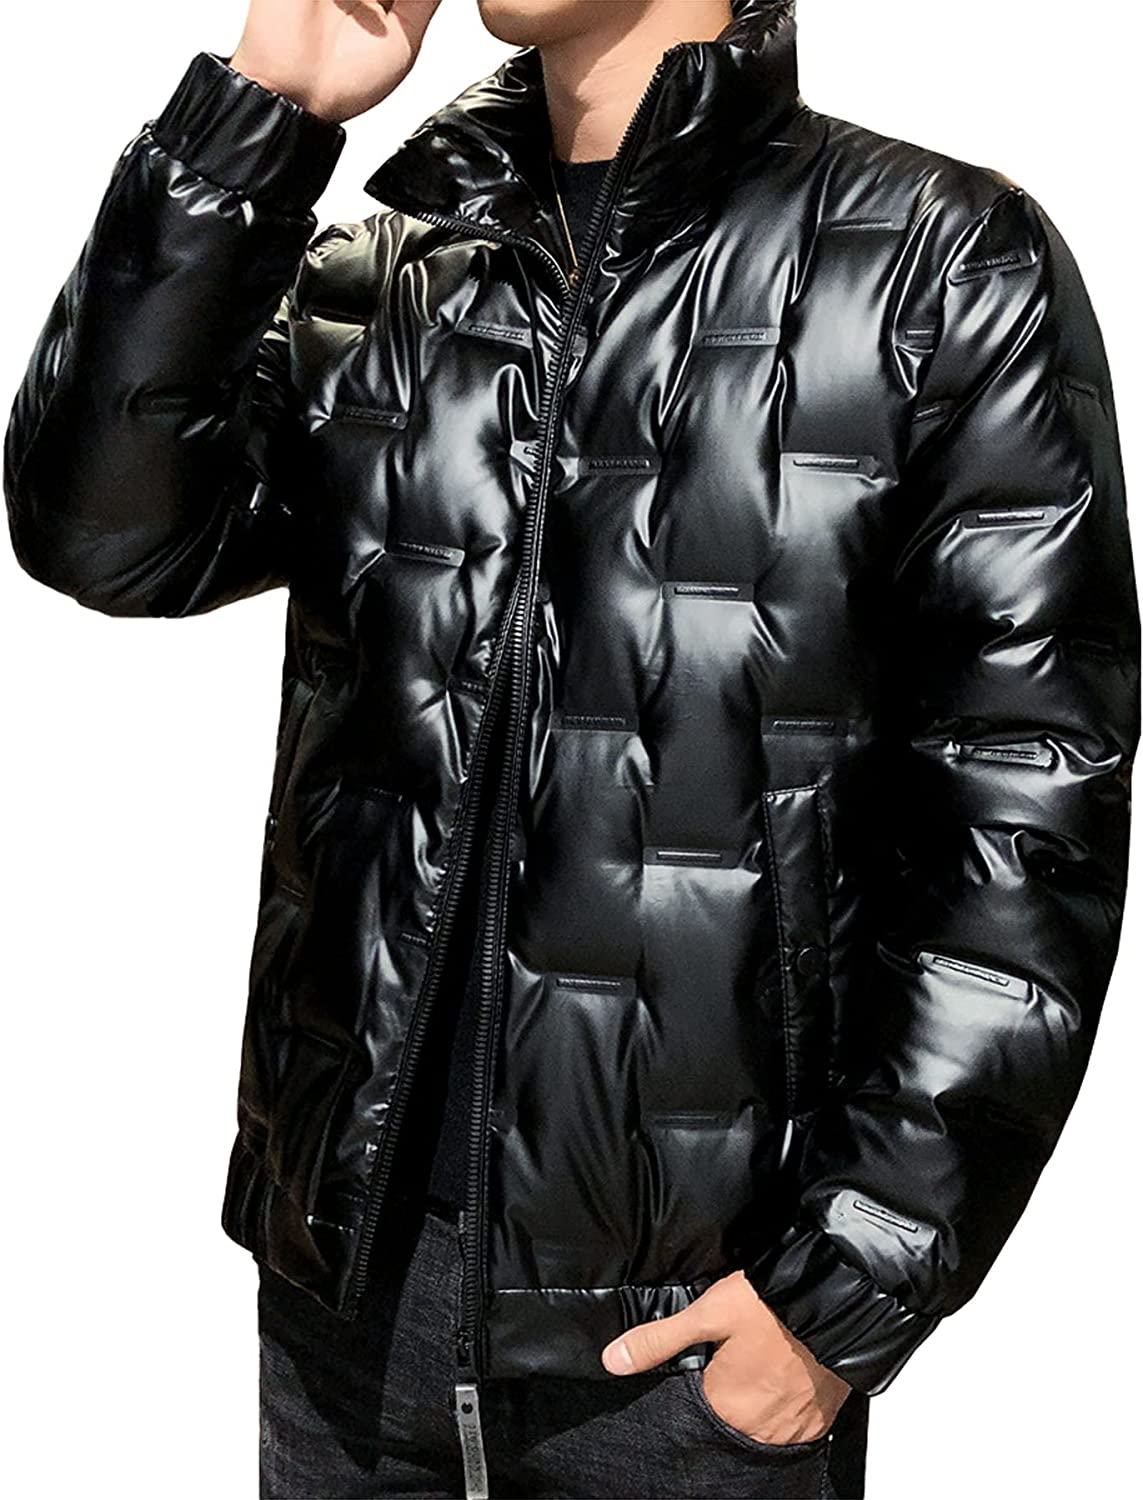 Men's Stand Collar Down Jacket Lightweight Puffer Jacket Water Resistant Warm Winter Snow Cargo Coat with Pockets